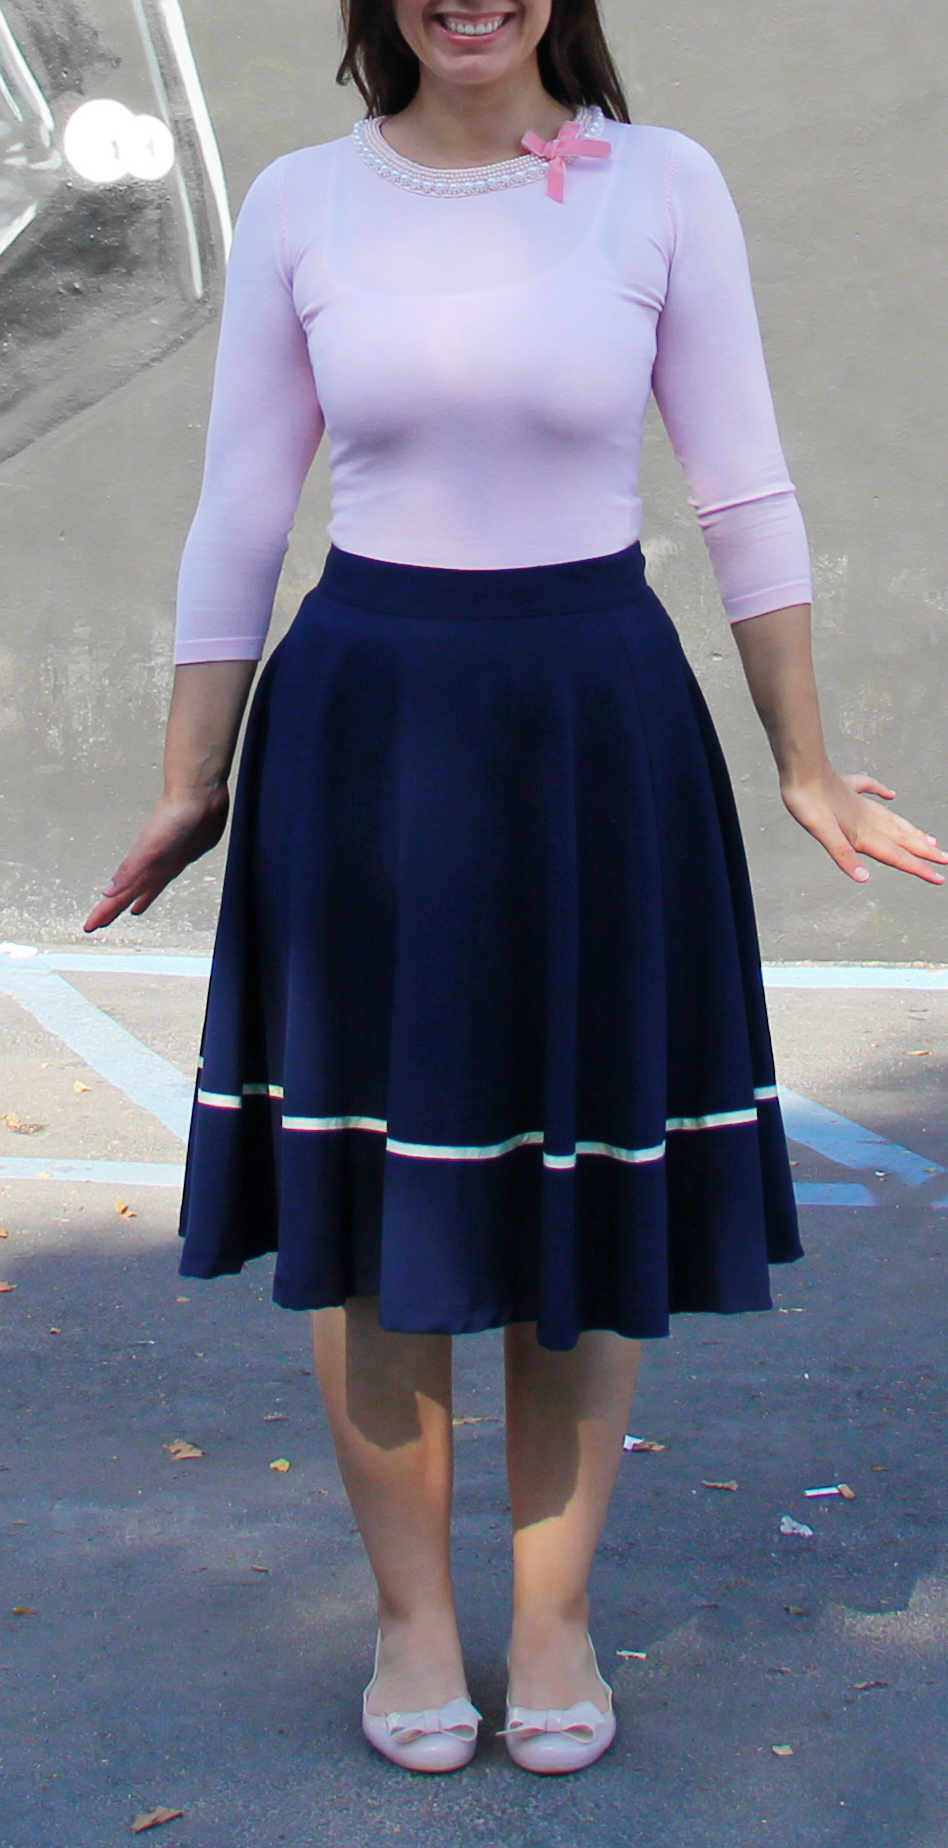 Pink sweater with neckline embellishment with navy midi skirt by Vader mural.